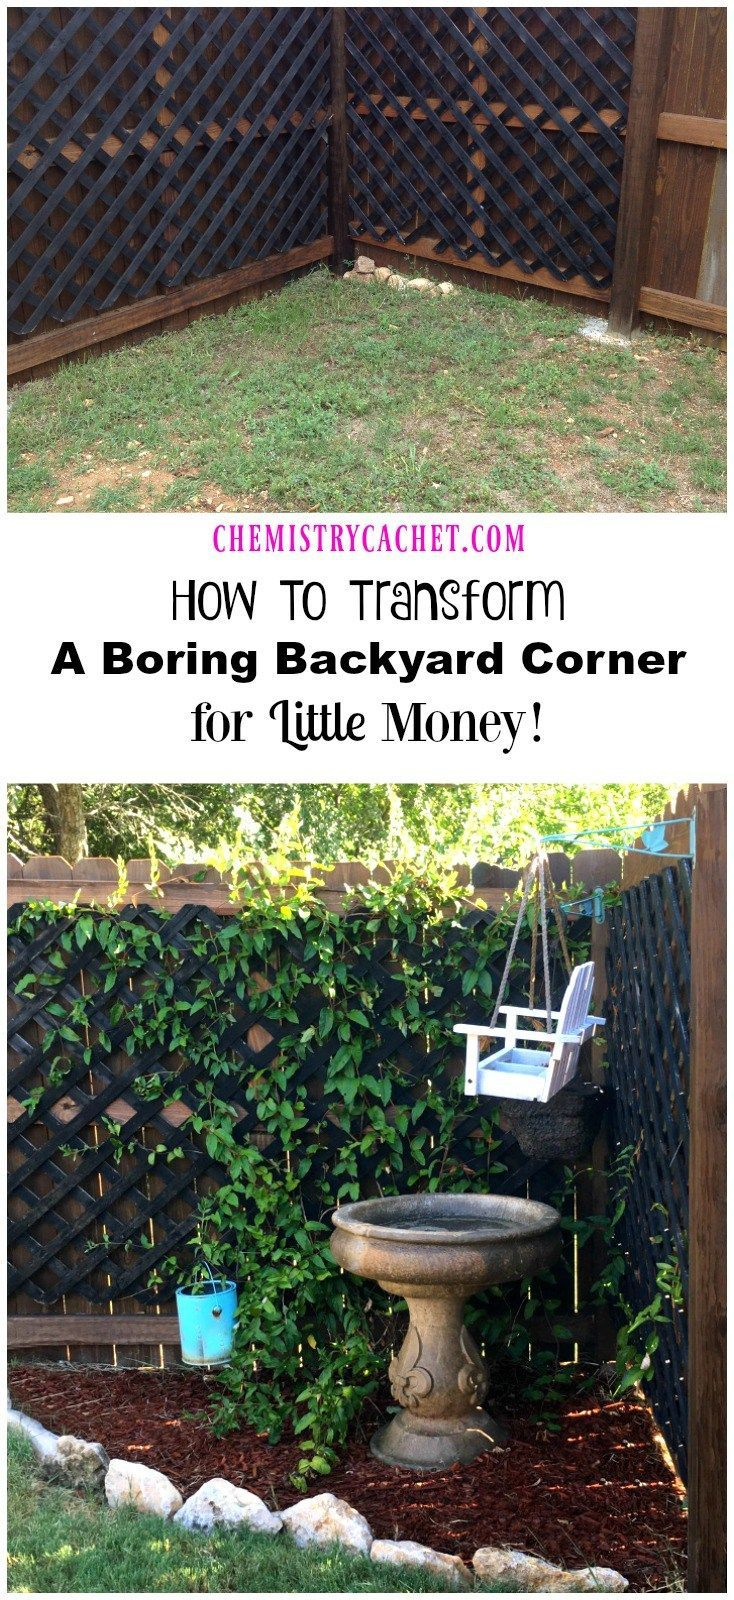 How To Transform A Boring Backyard Corner for LITTLE money Turn any corner of your yard into a pretty little garden on